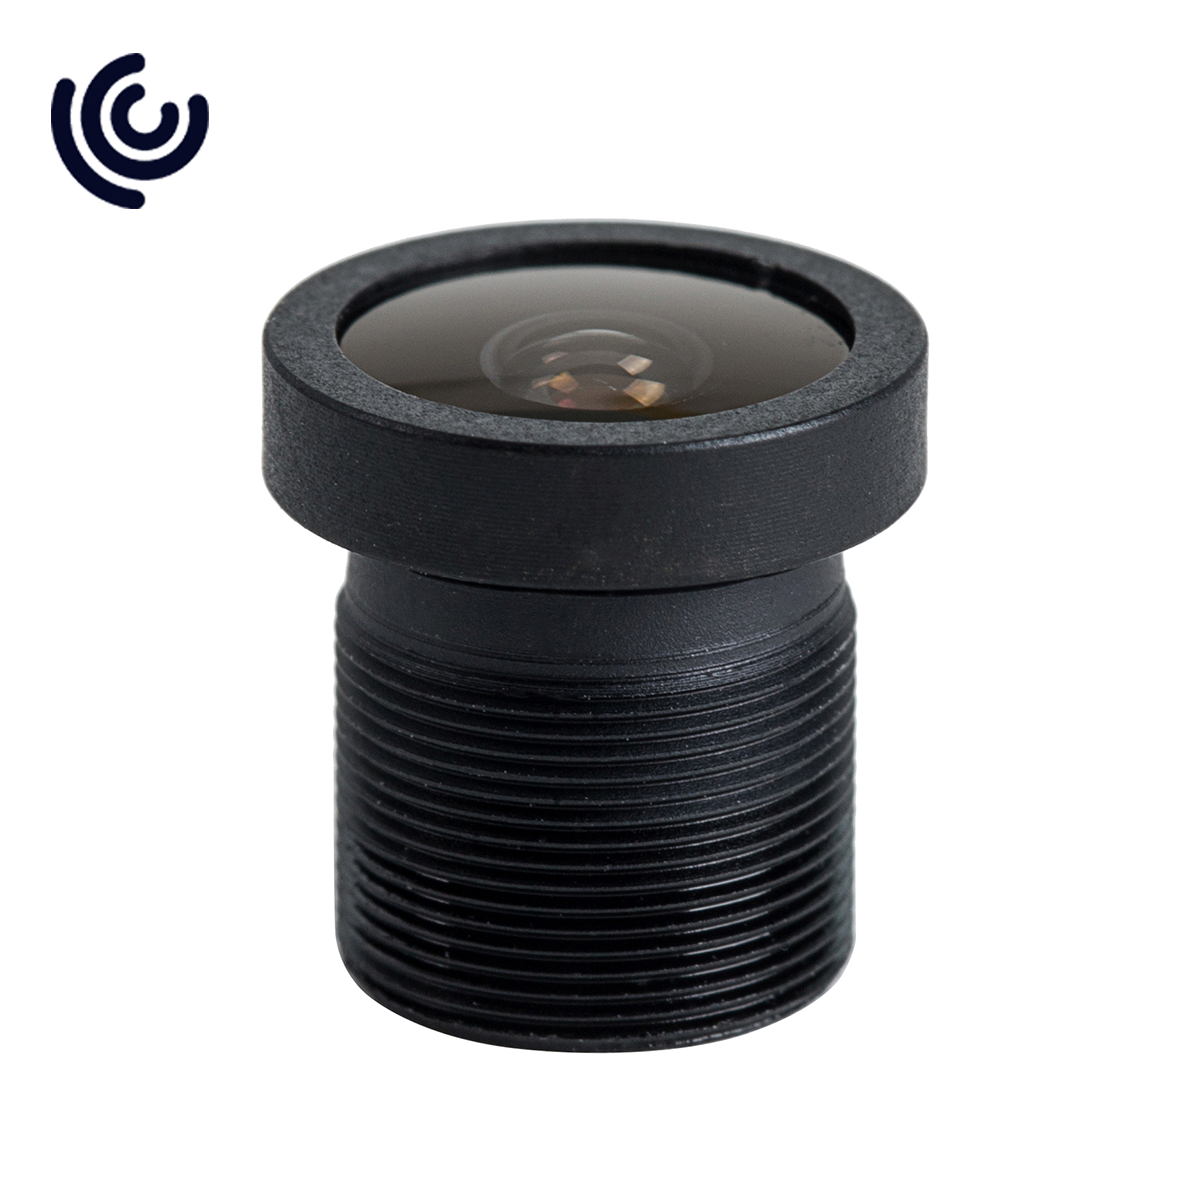 "1/2.5"" 3.65mm with M8 mount DFoV 120 Degree Wide Angle Lens"